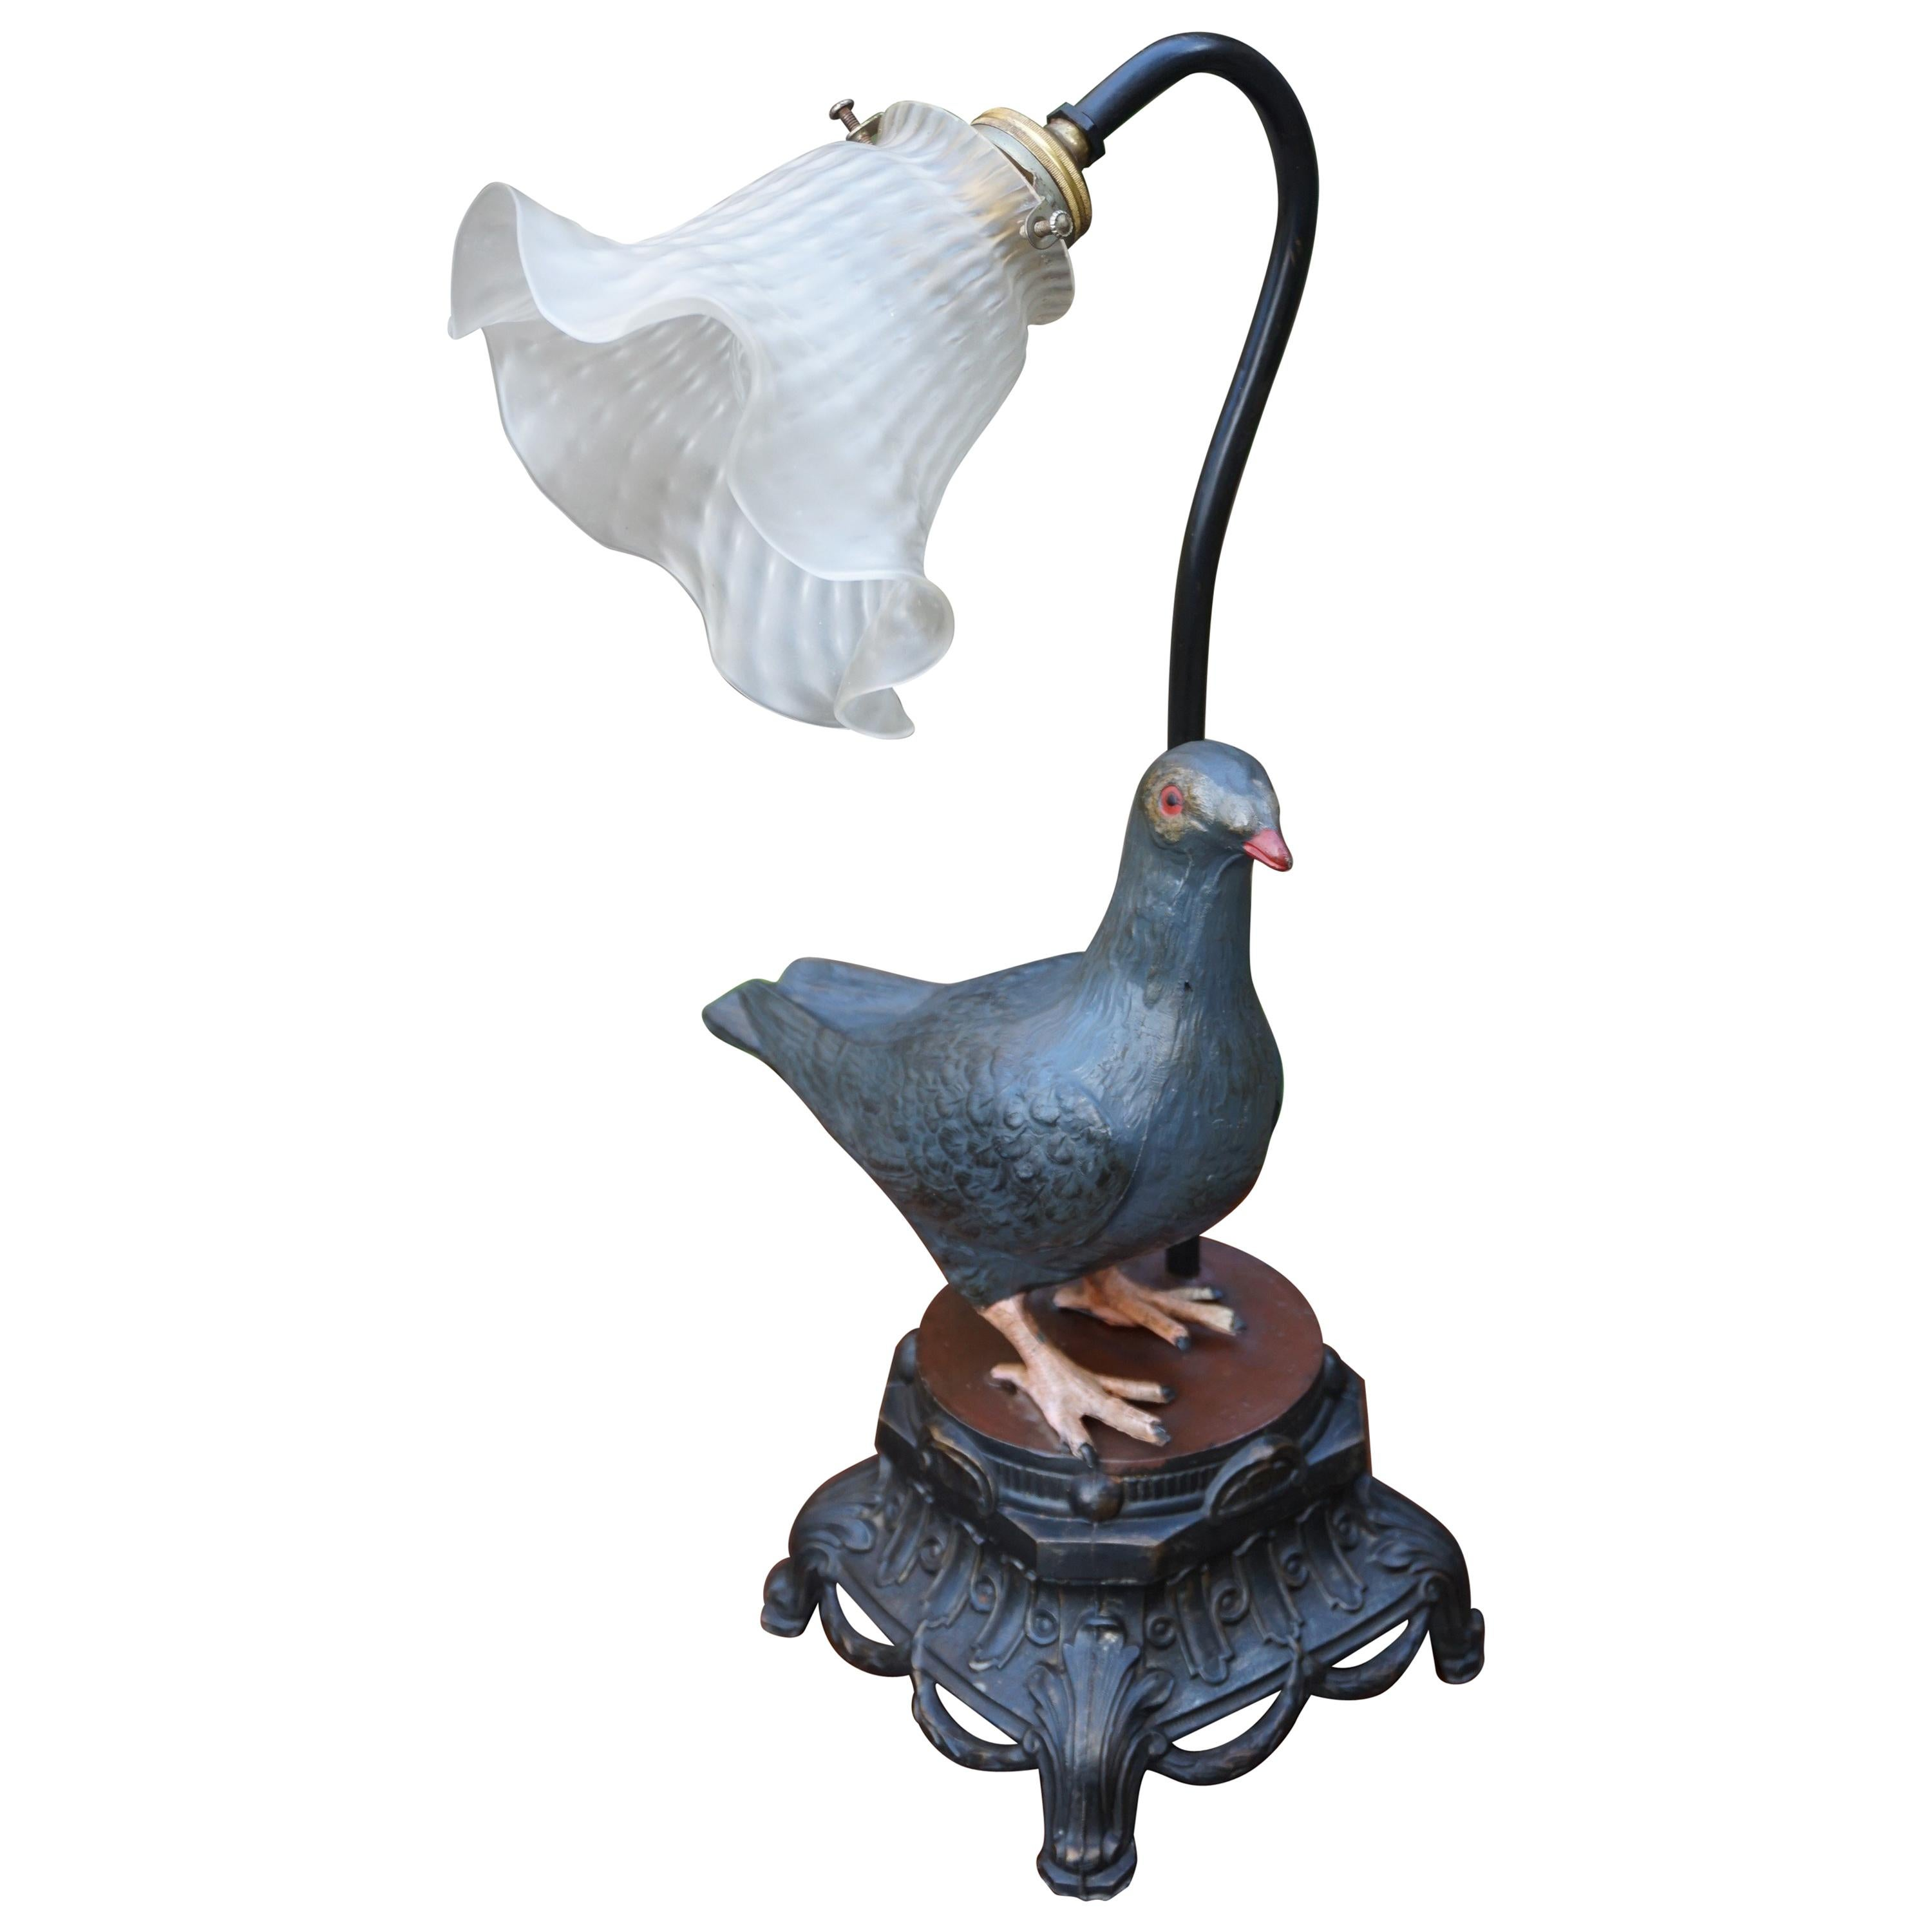 Antique Table or Desk Lamp with Symbolic Dove Sculpture and Flowery Shade